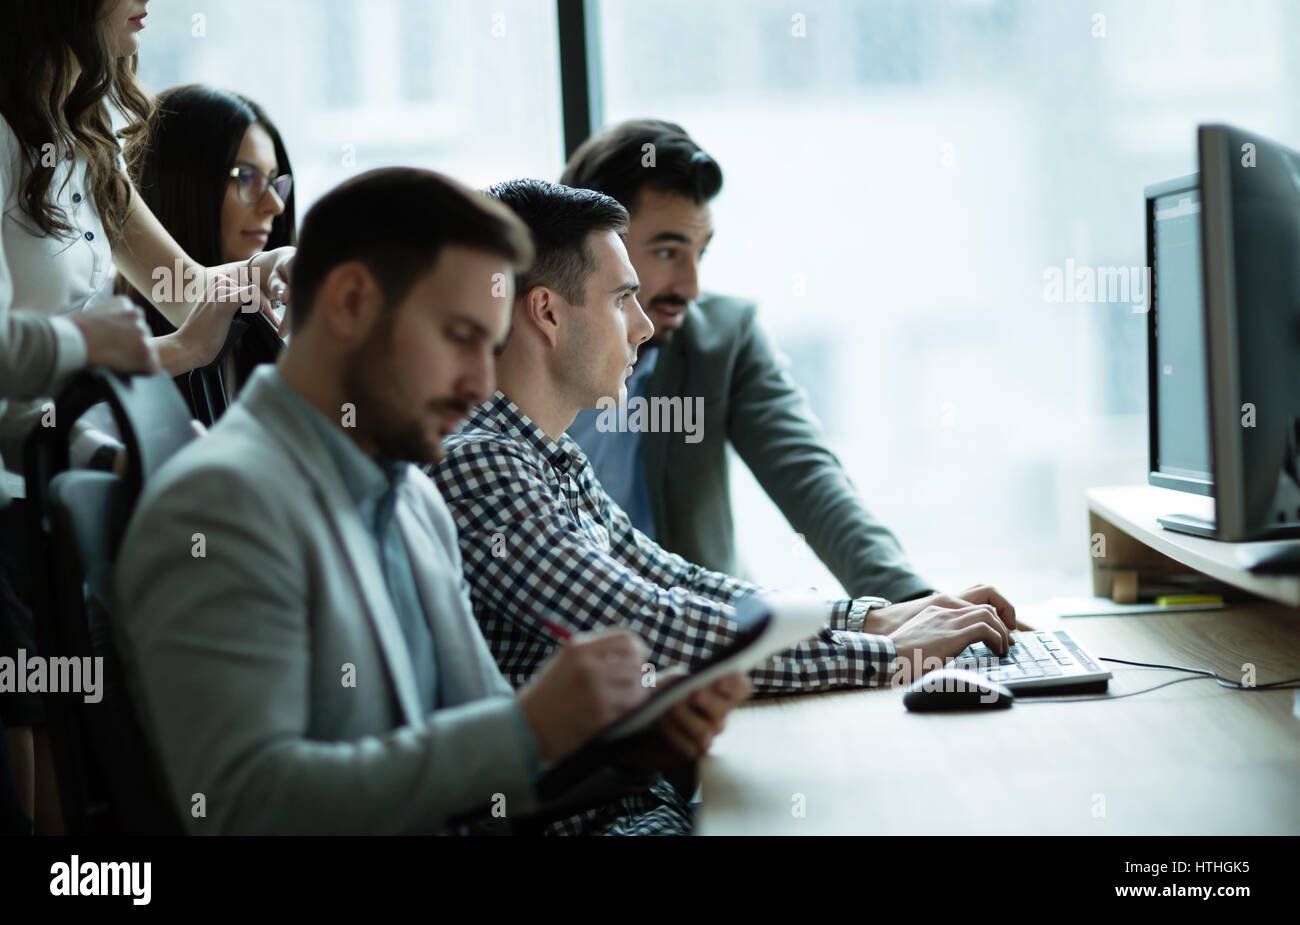 Business colleagues at information technology company offices - Stock Image